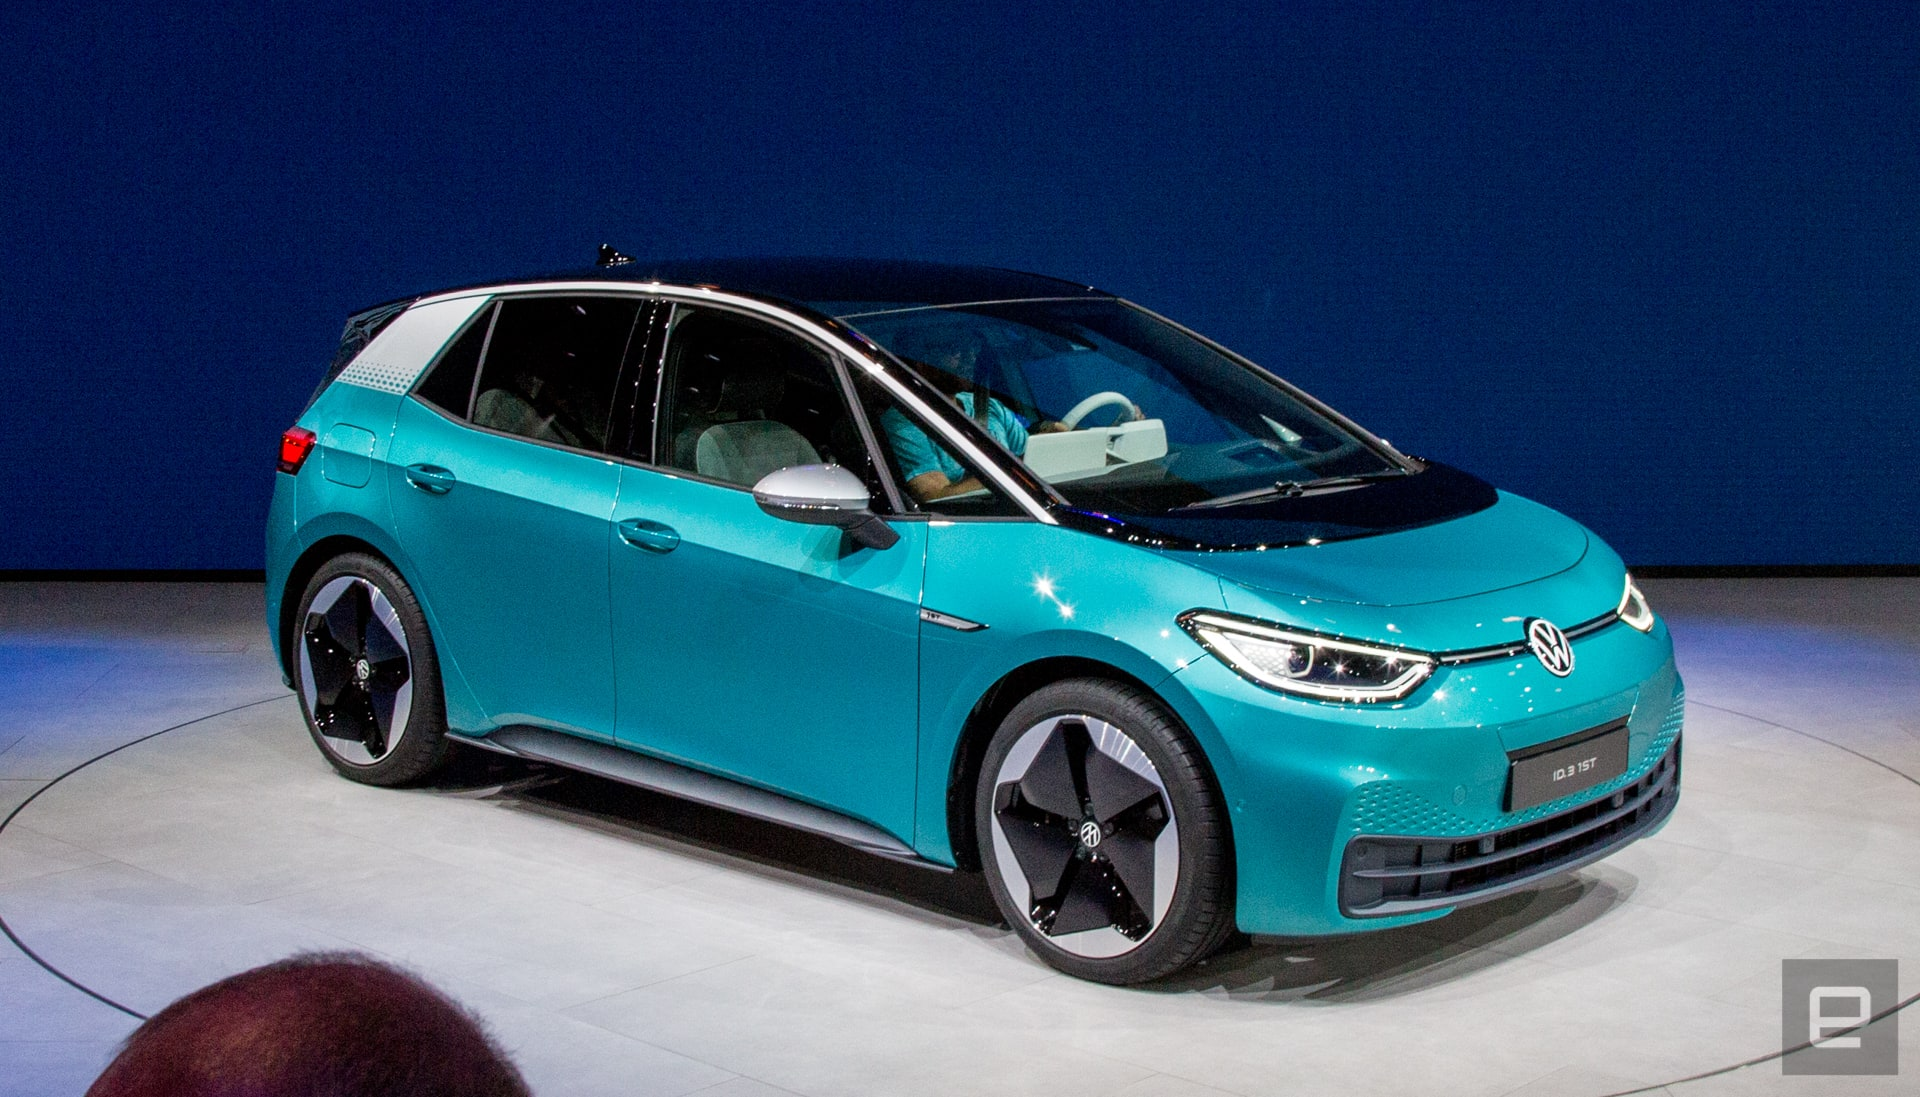 Volkswagen takes the wraps off the production-ready ID.3 EV